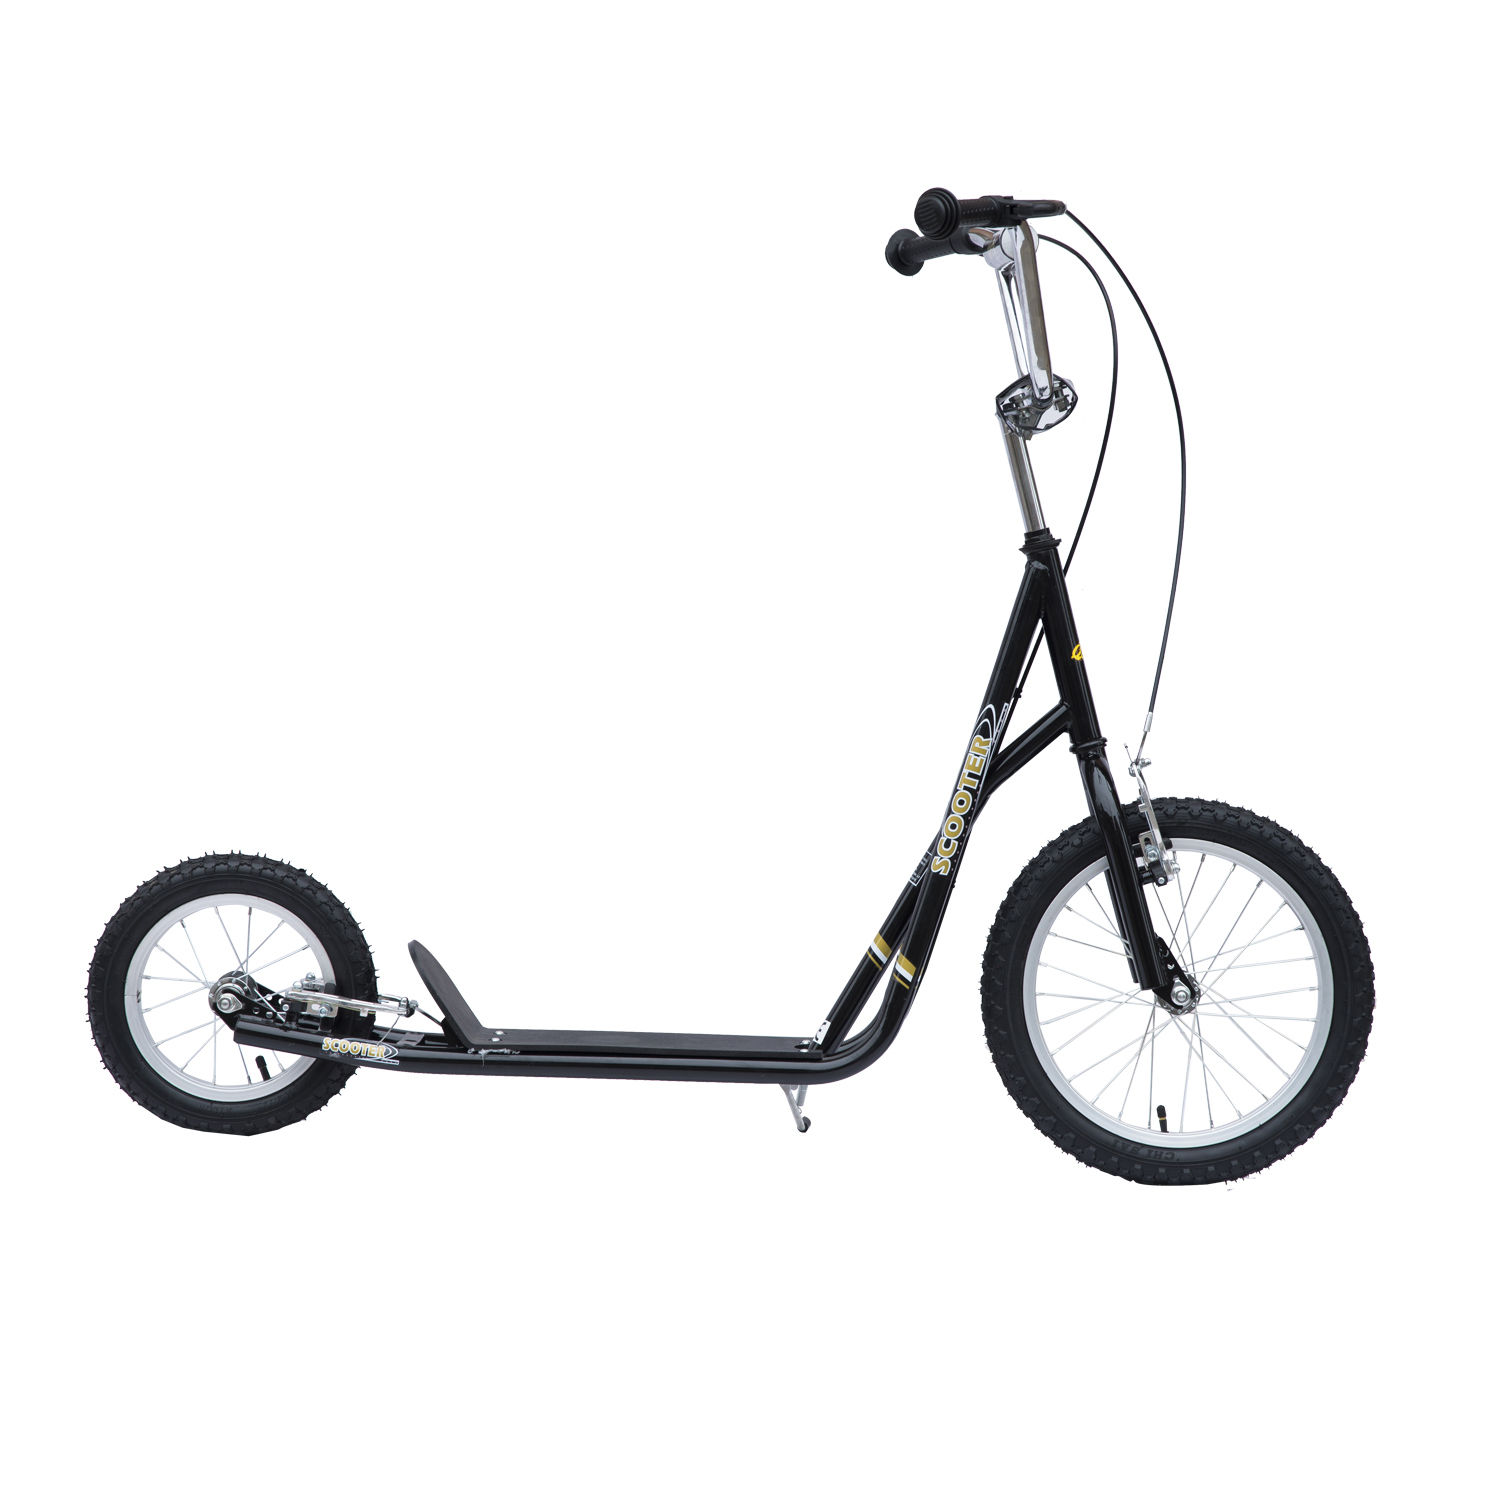 Adjustable-Teen-Kick-Scooter-Kids-Ride-On-Stunt-Street-Bike-16-034-Tire thumbnail 4